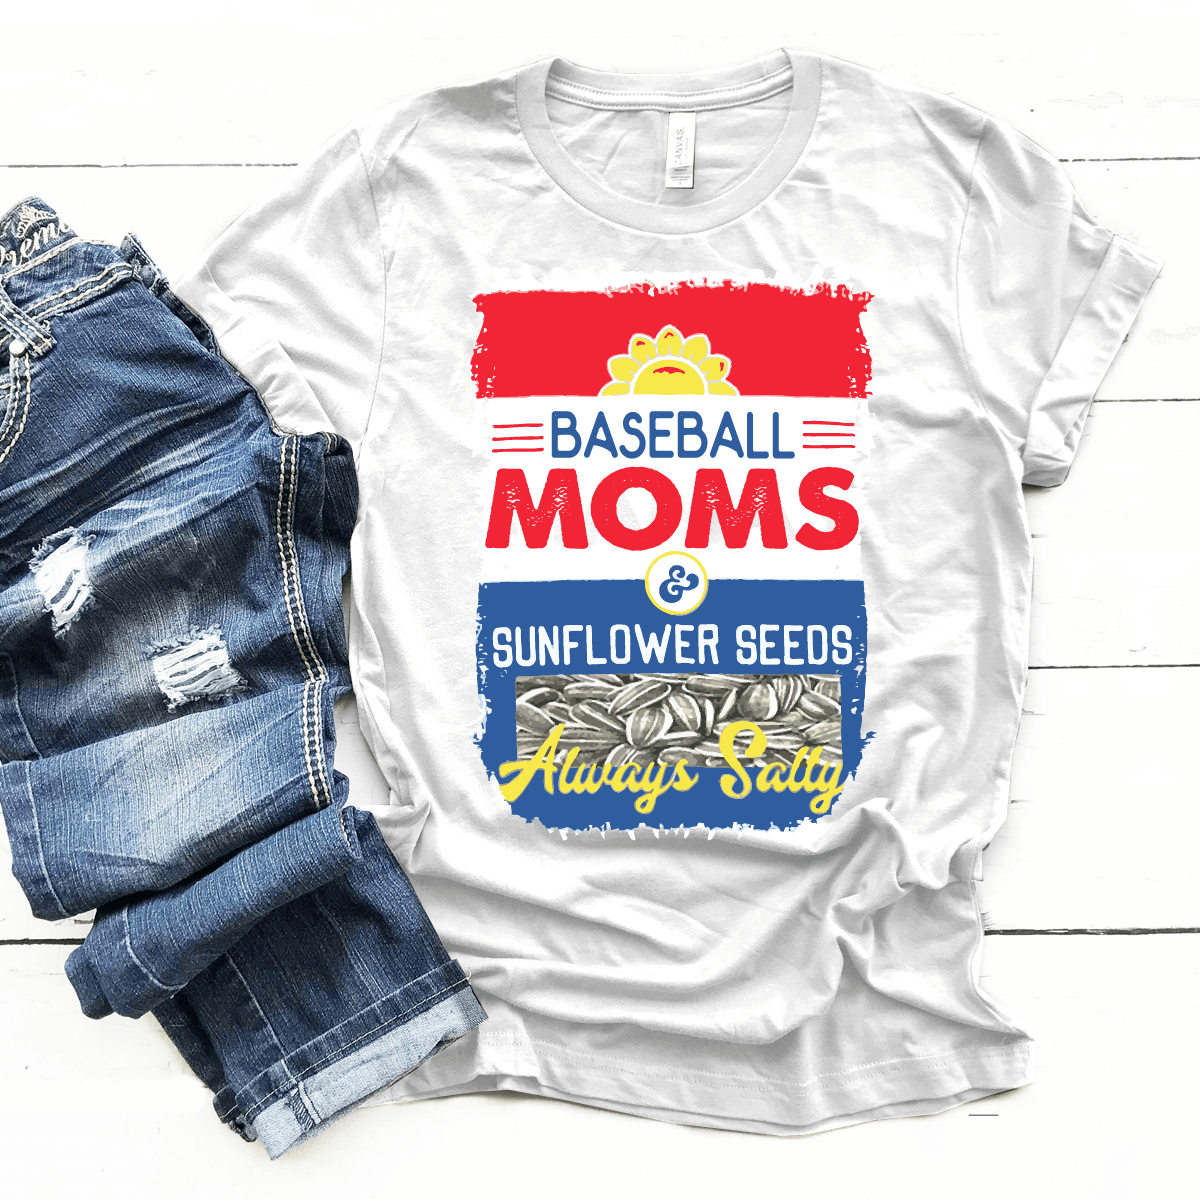 Baseball Moms Sunflower Seeds - Premium Unisex T-Shirt